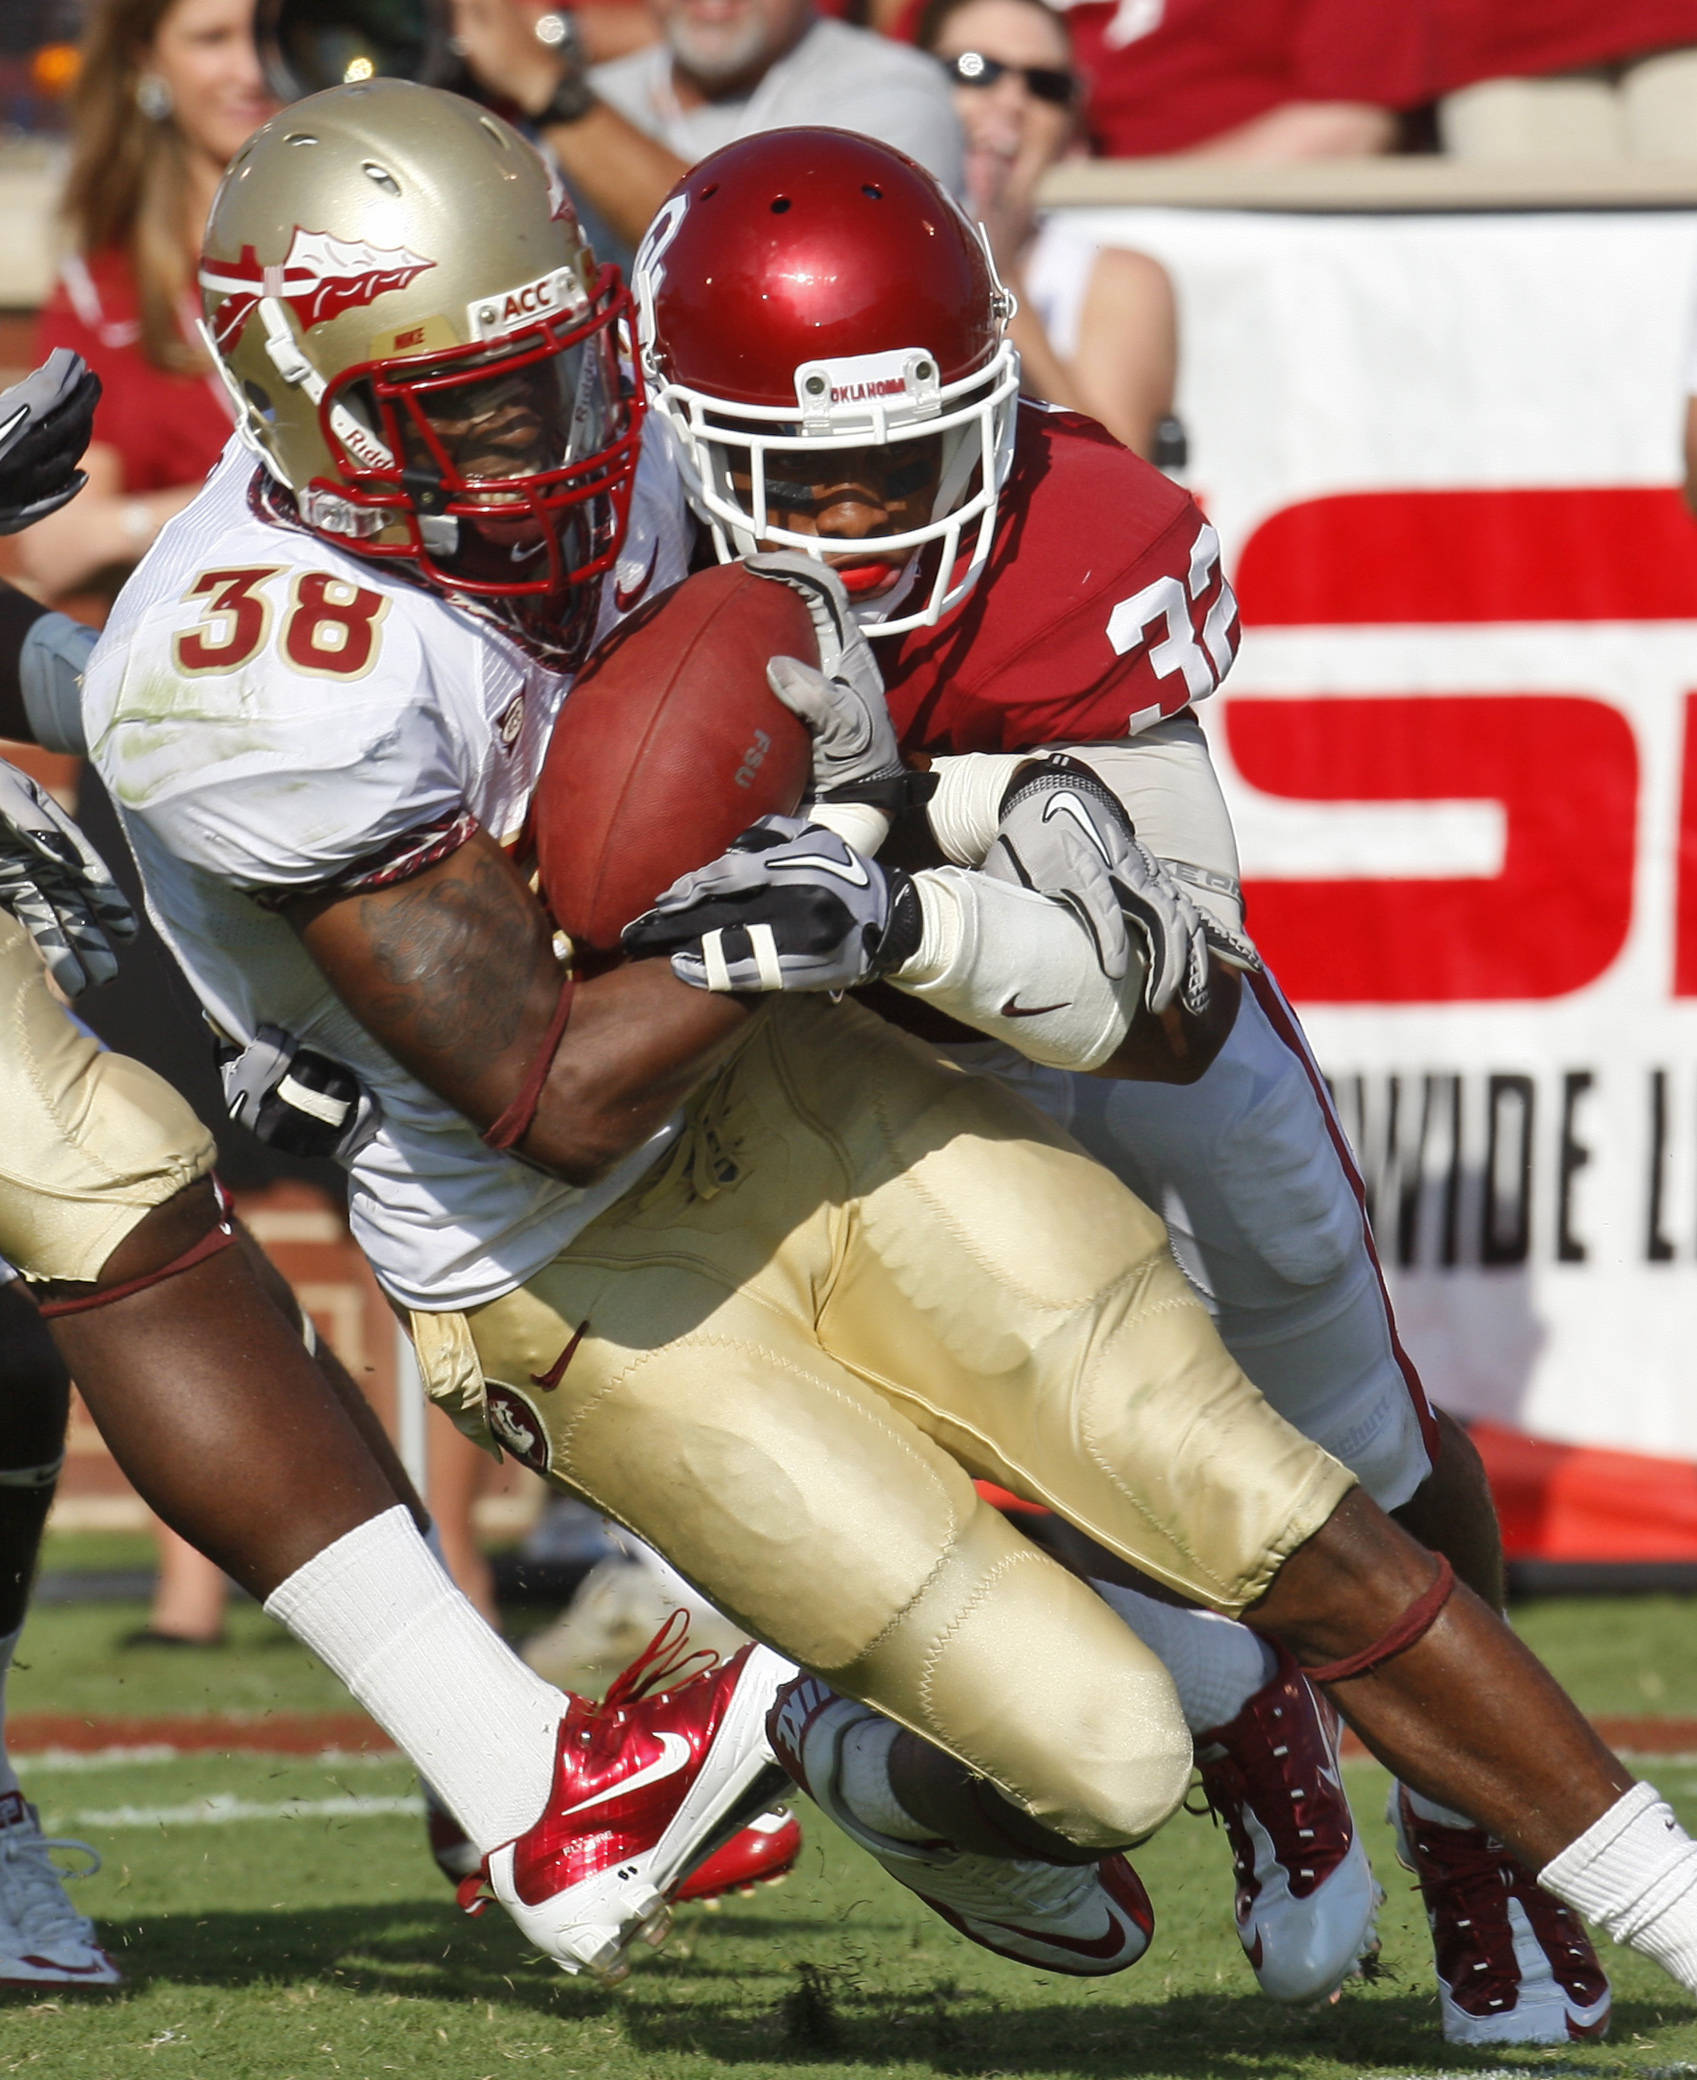 Florida State running back Jermaine Thomas, left, is brought down by Oklahoma cornerback Jamell Fleming, right, in the third quarter. (AP Photo/Sue Ogrocki)